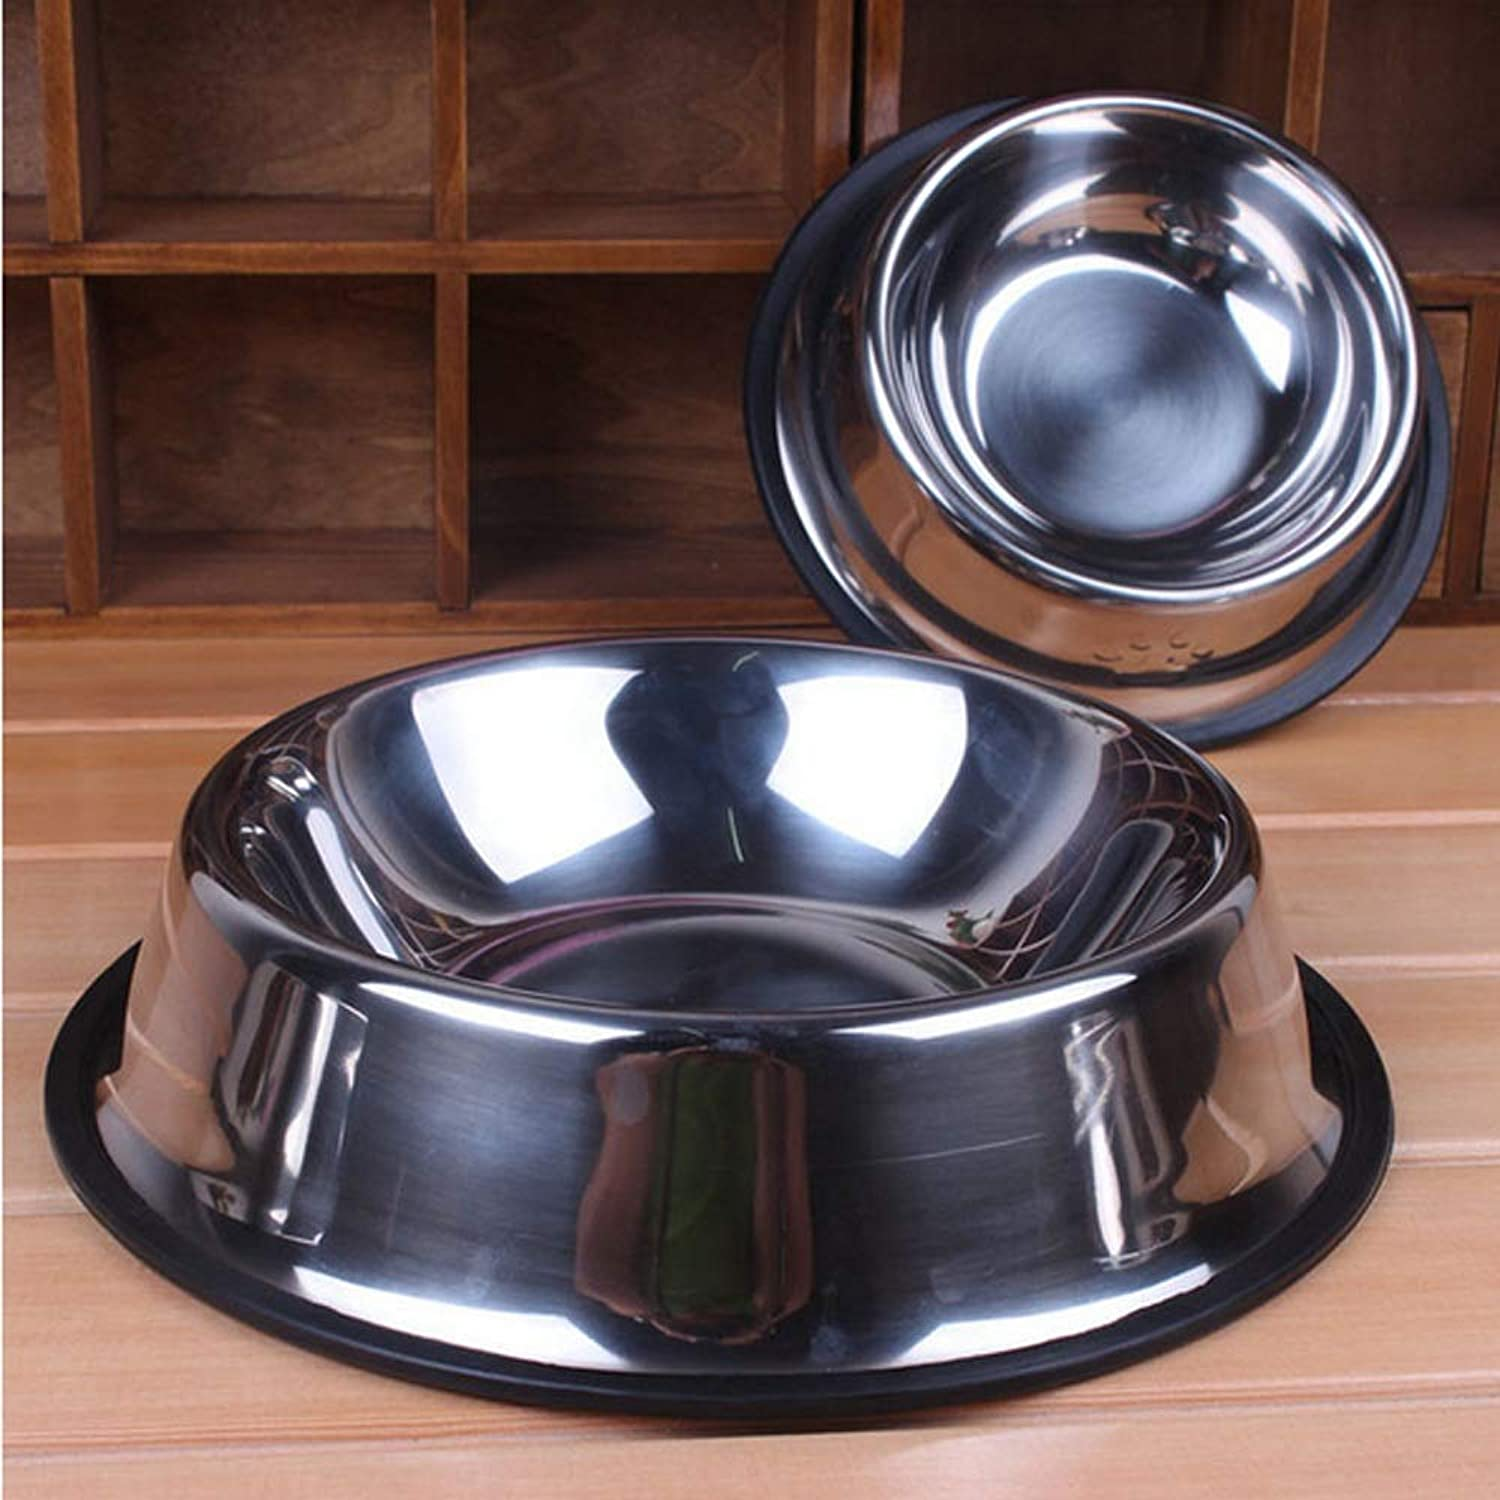 Dog Bowl, Stainless Steel, Medium and Small Dog Rubber Base, Pet Feeding Bowl and Water Bowl Perfect Choice (2 Sets) Interesting Feeding Device, Perfect for Pet Feeding Bowl and Water Bow